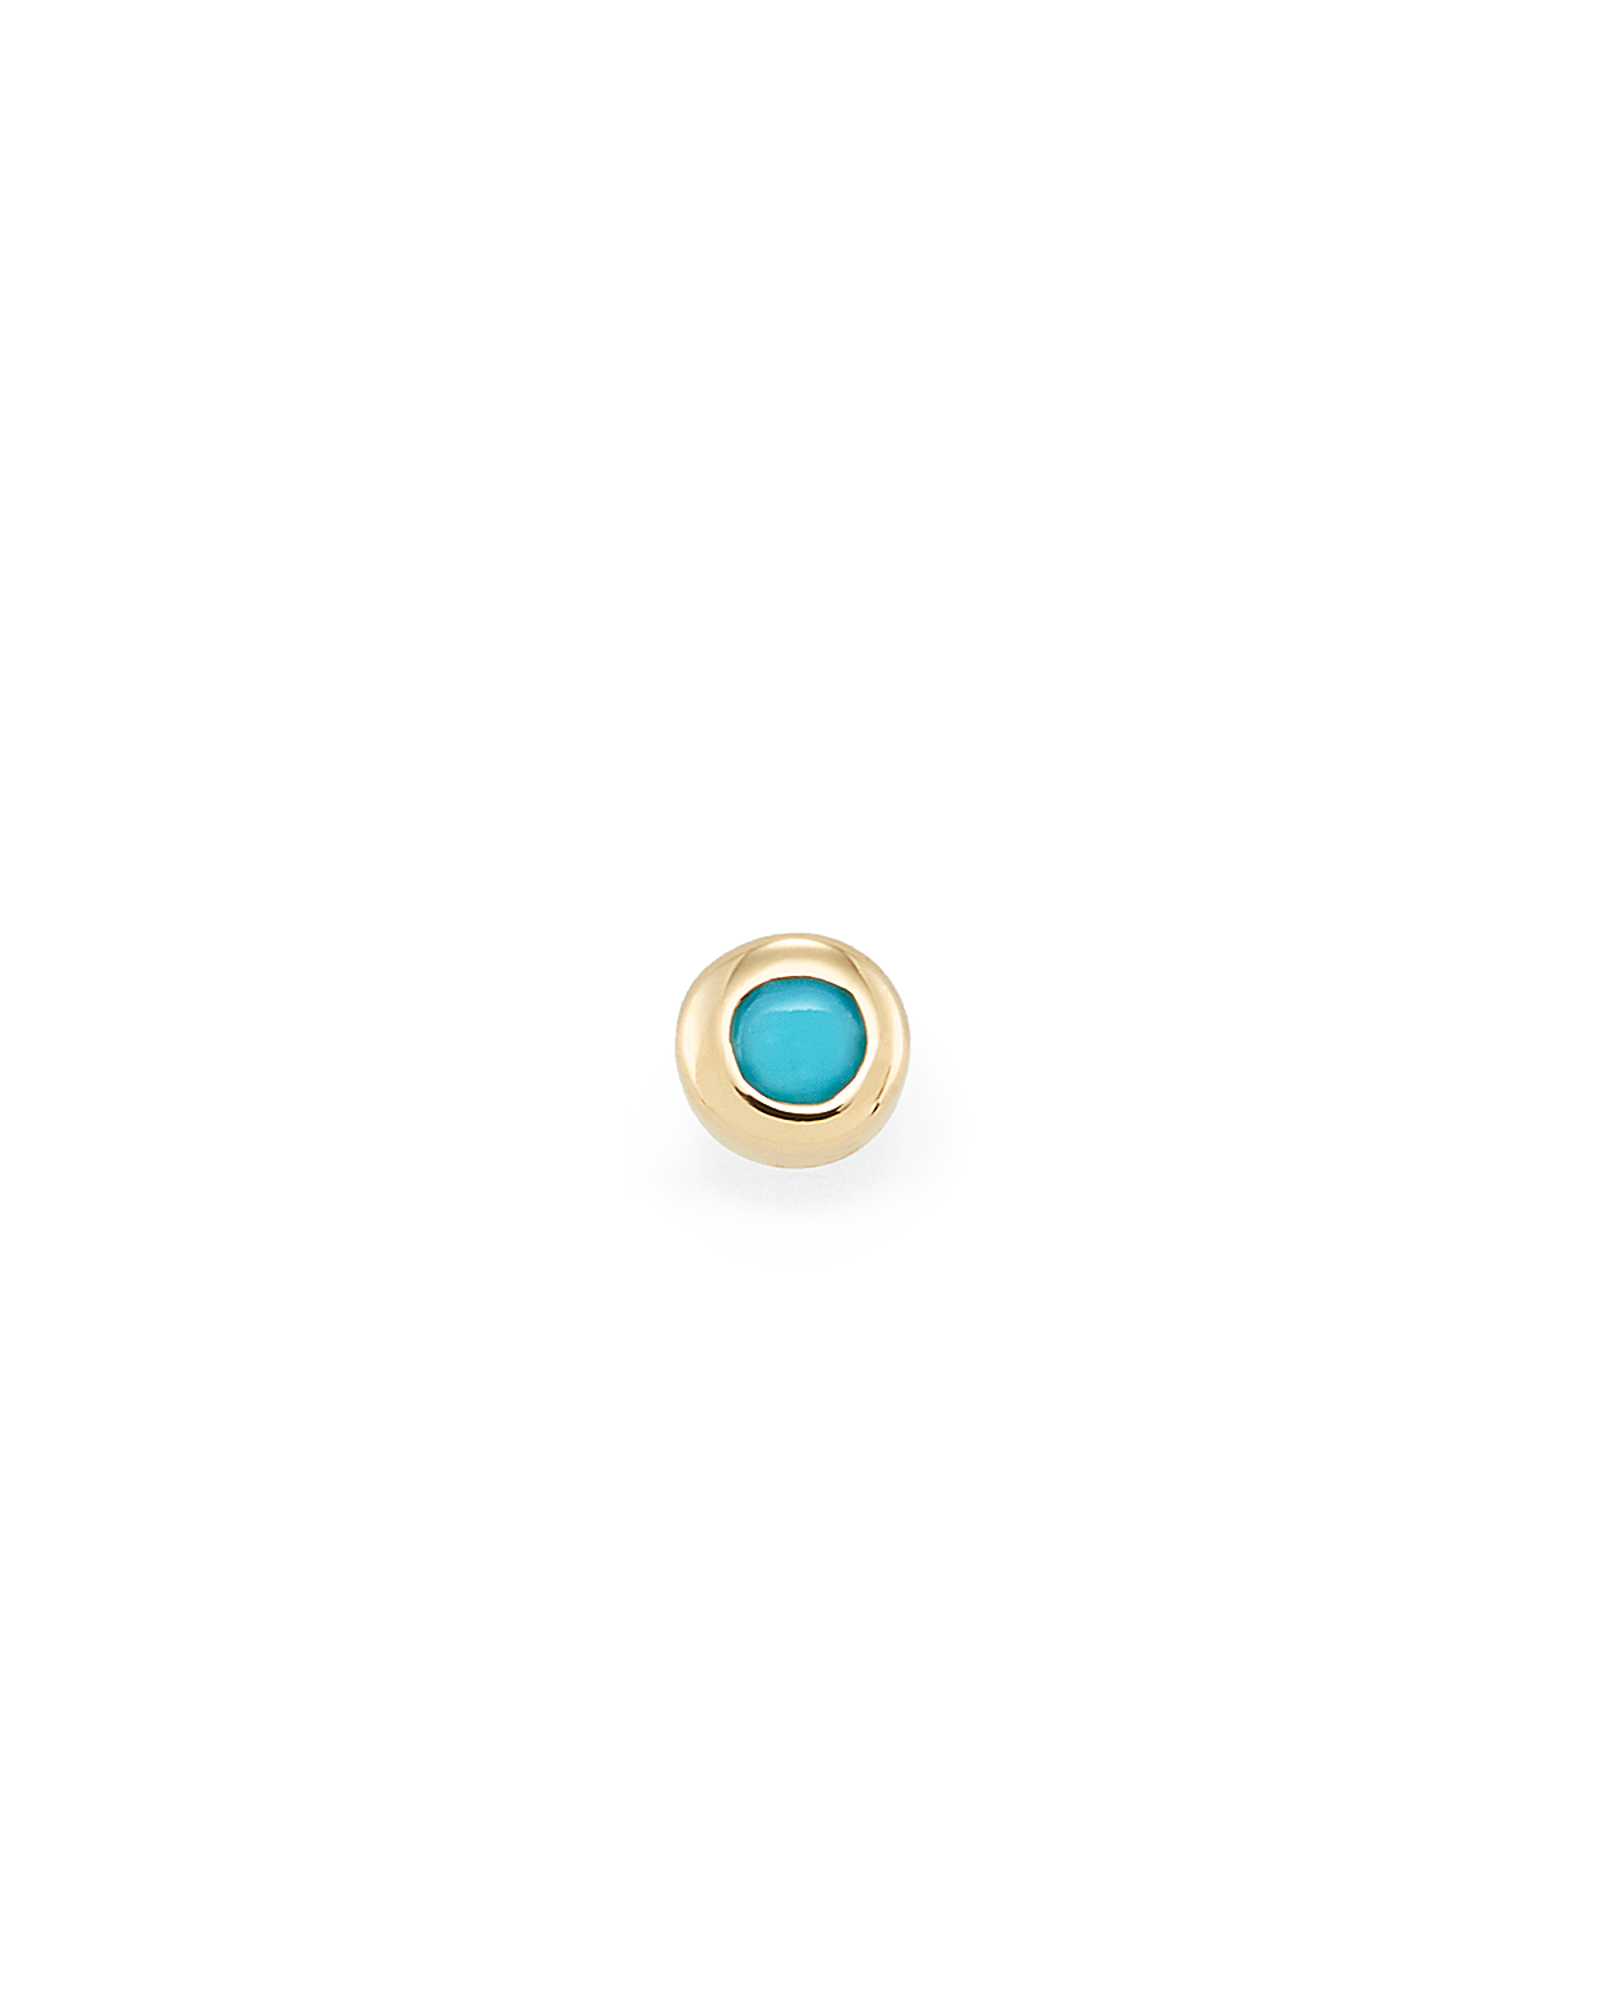 Reeve Mini 14K Yellow Gold Stud Earring in Turquoise